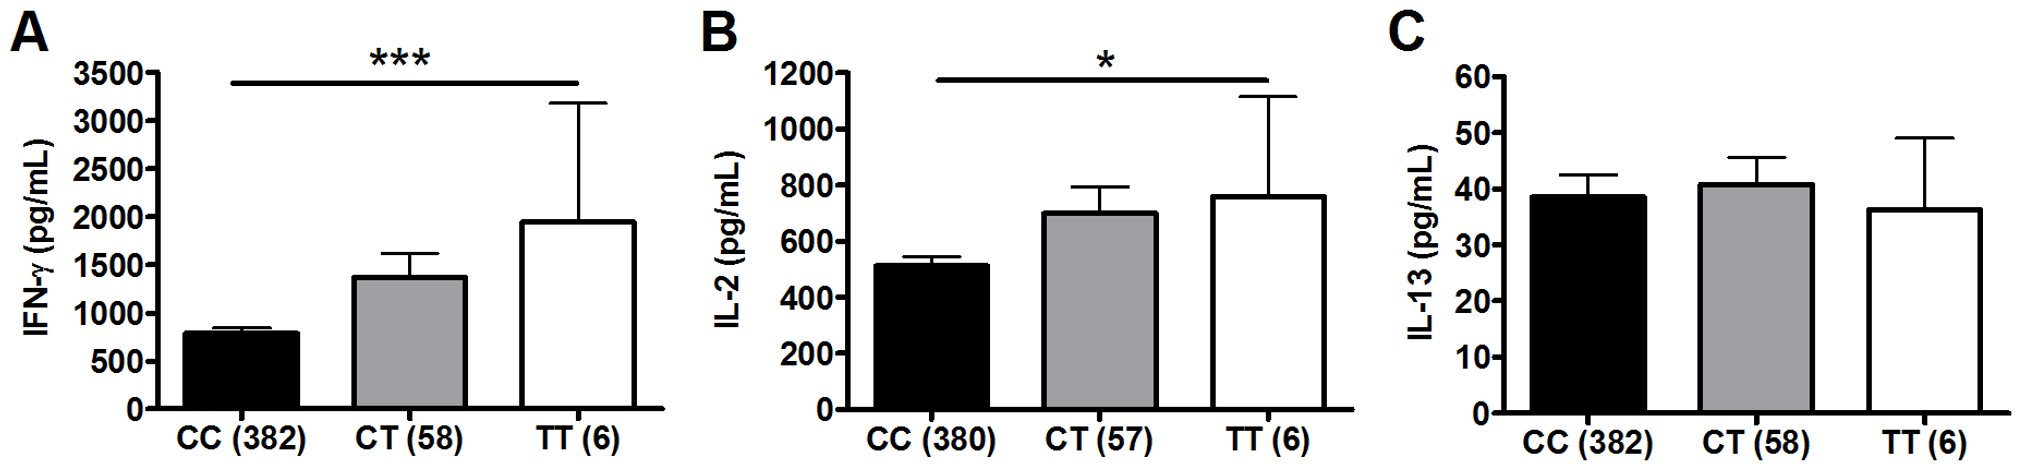 Polymorphism TLR6_C745T is associated with BCG-induced whole blood cytokine production.